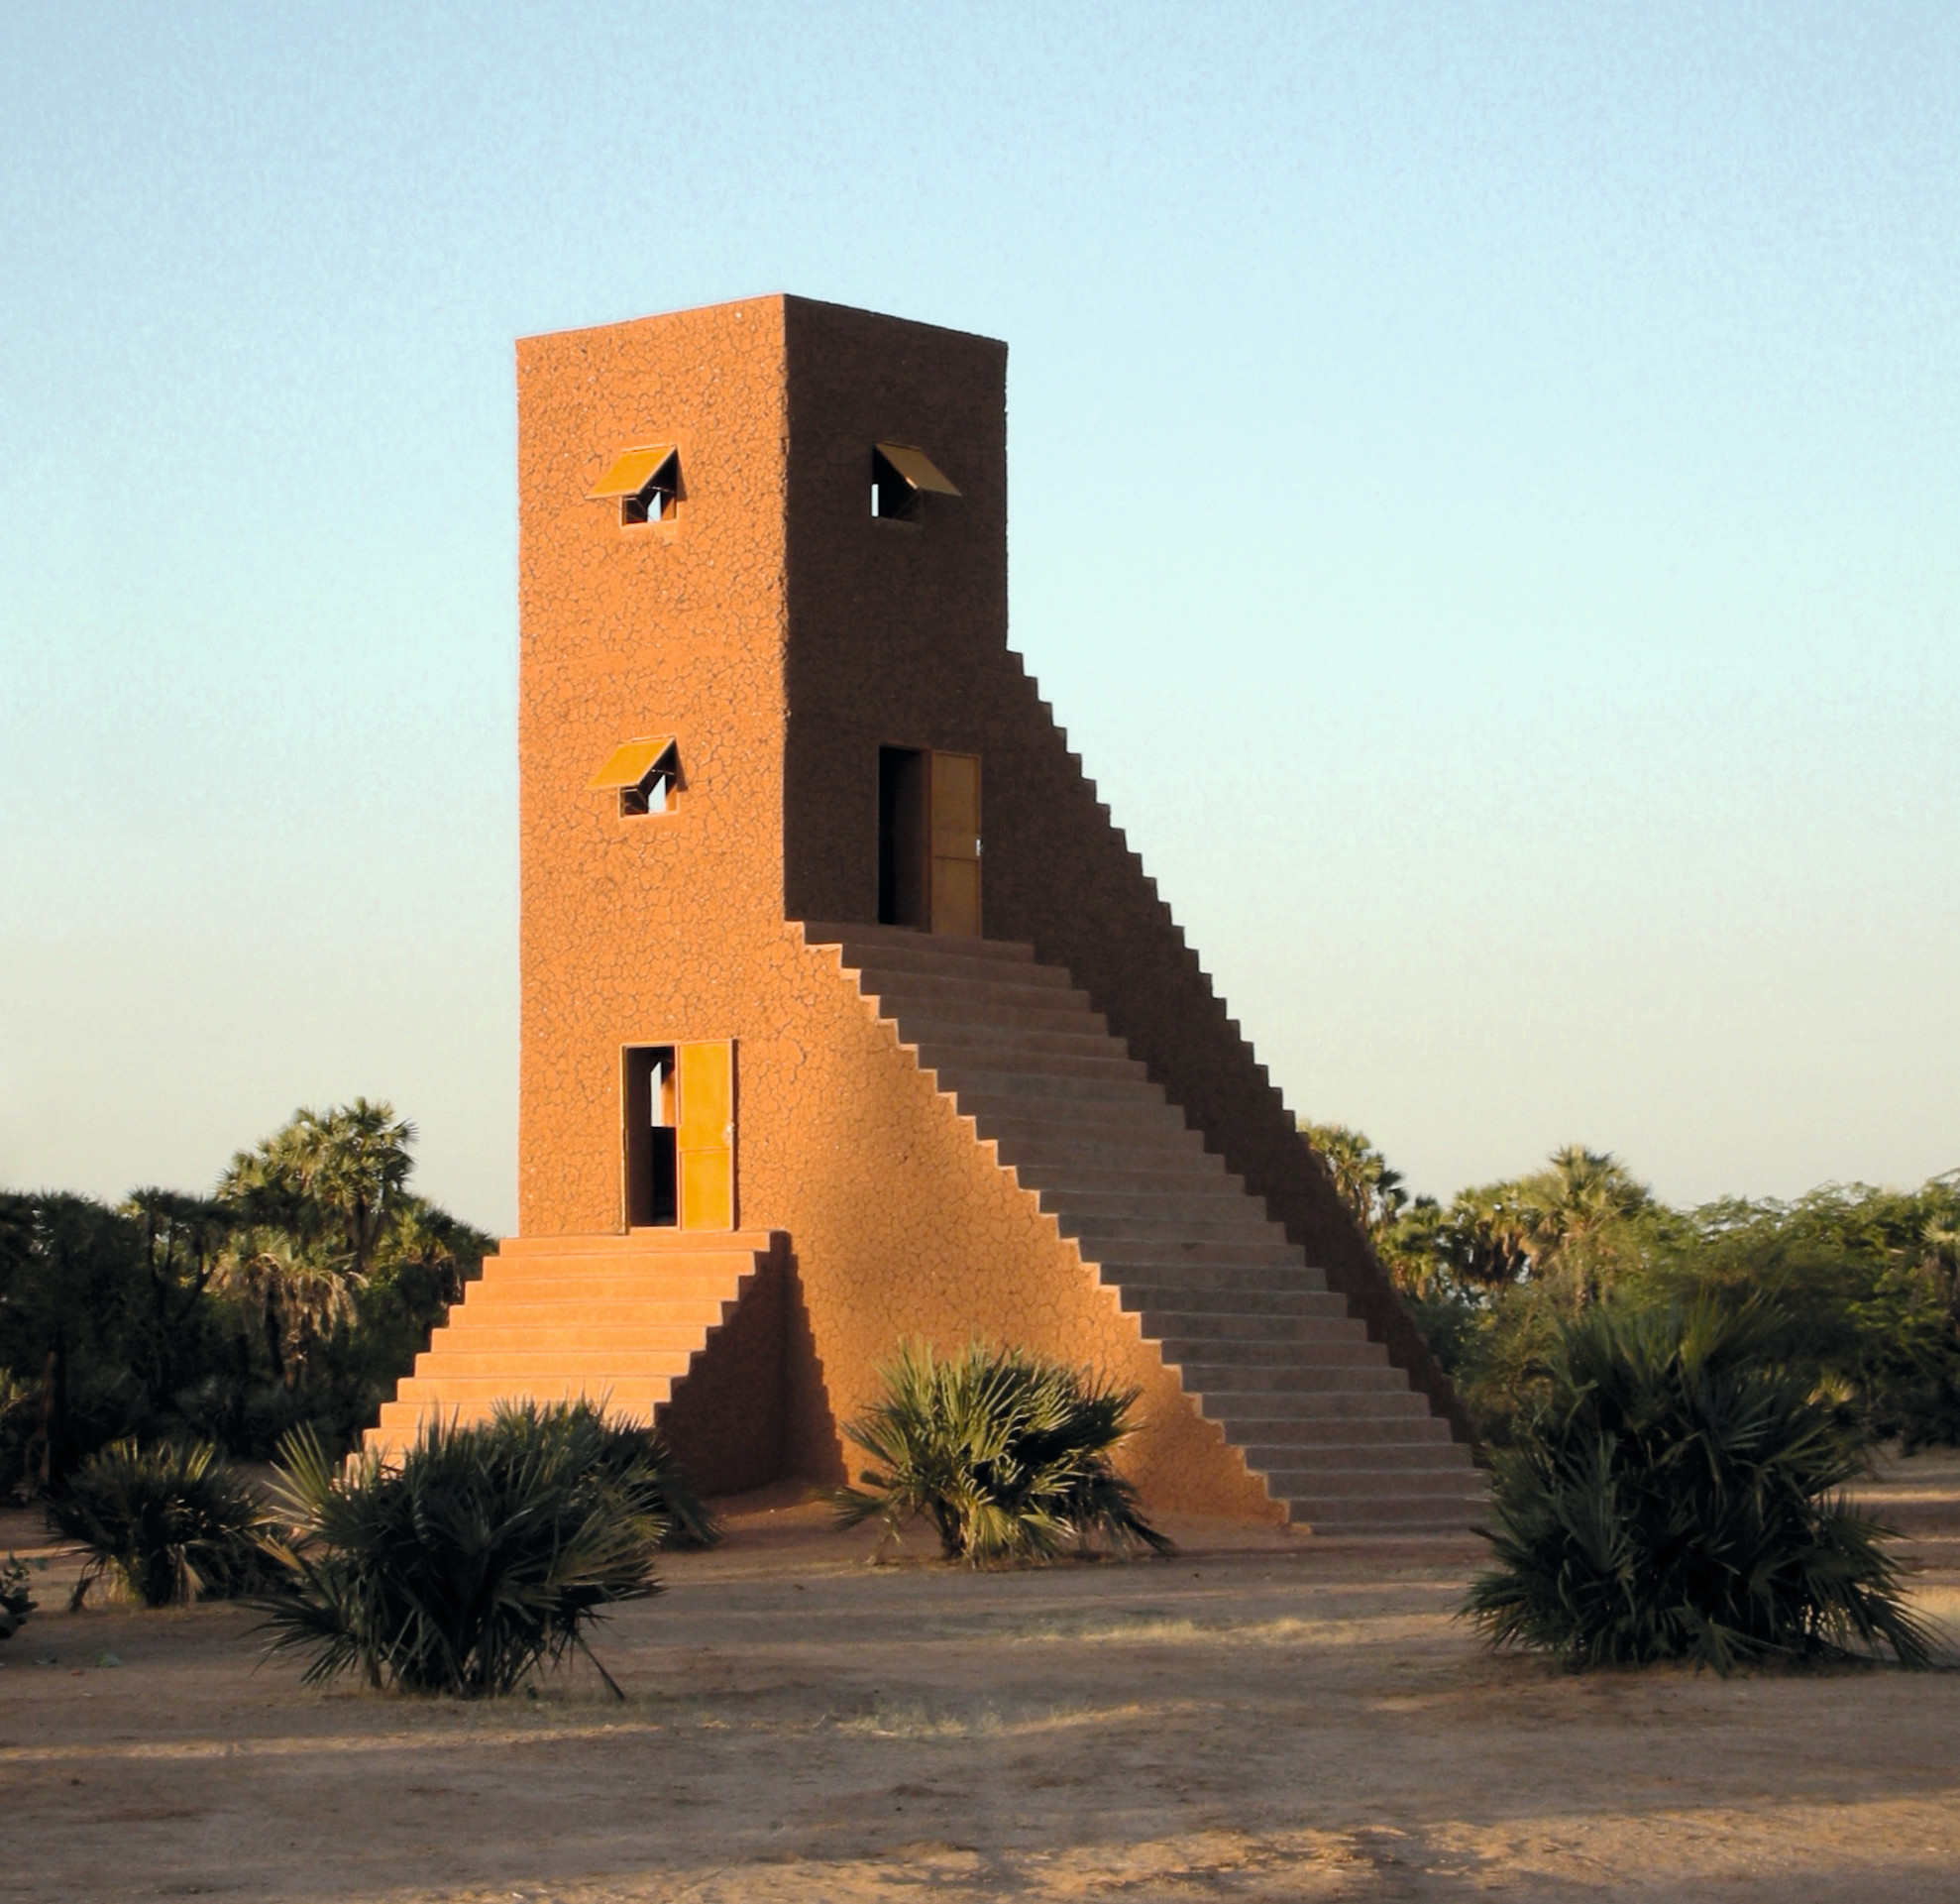 House to Watch the Sunset, 2005, Aladab, near Agadez, Niger, by Not Vital